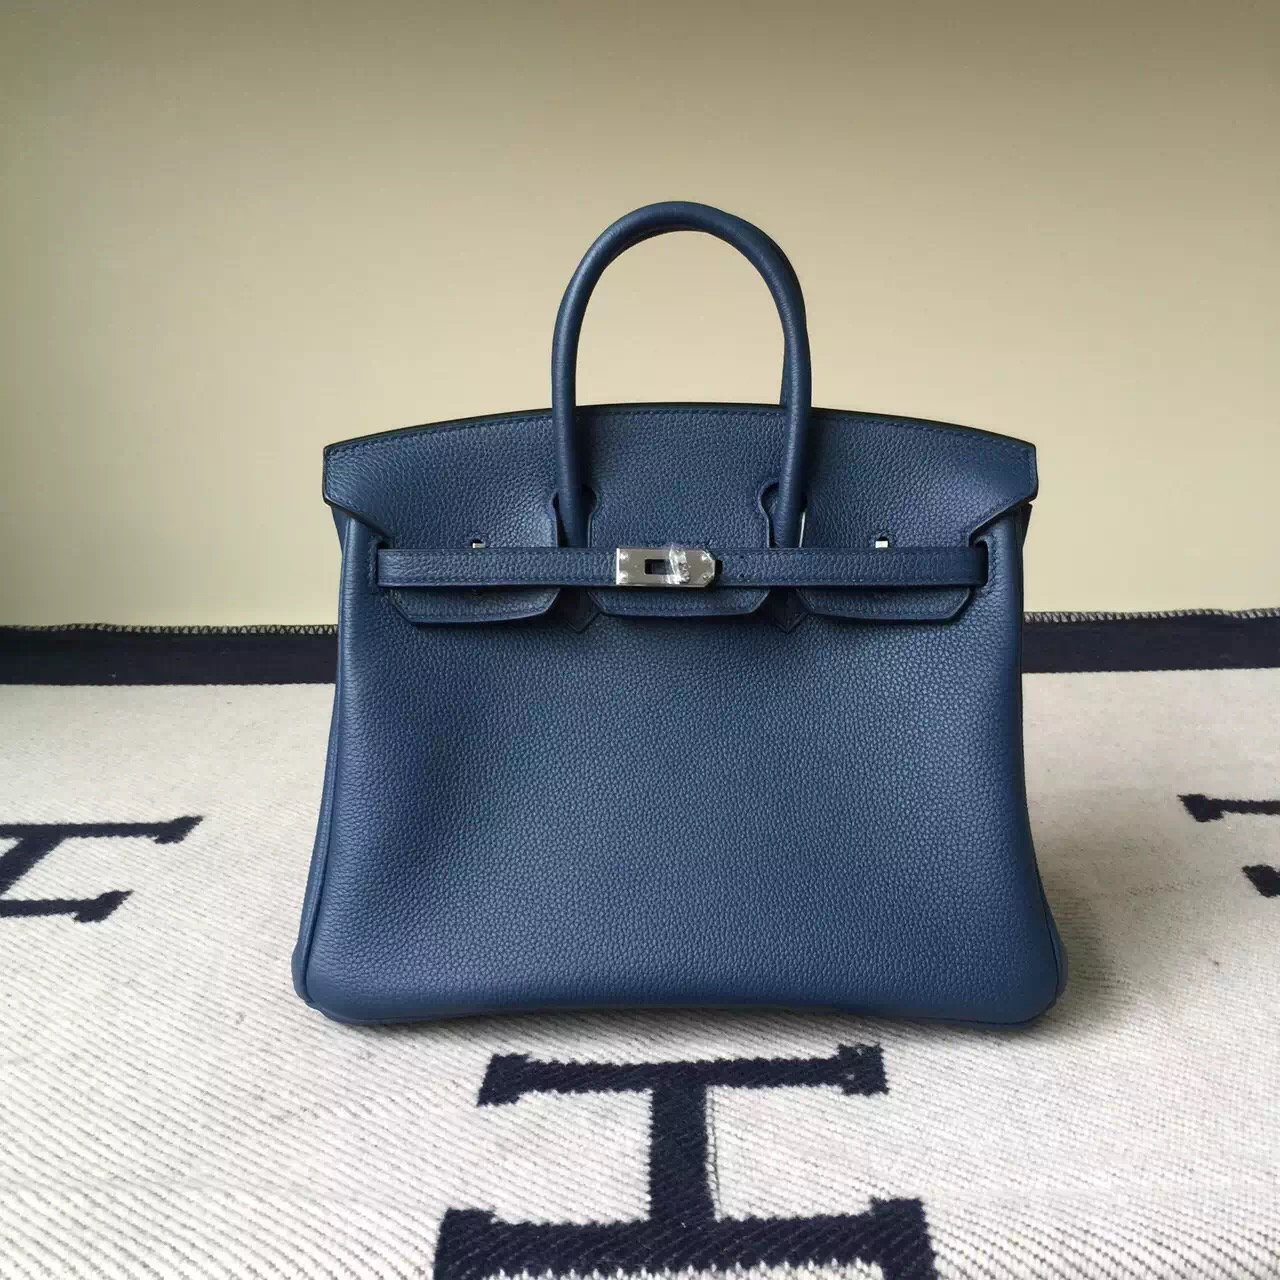 Discount Hermes Togo Calfskin Leather Birkin25cm Bag in Blue Duck